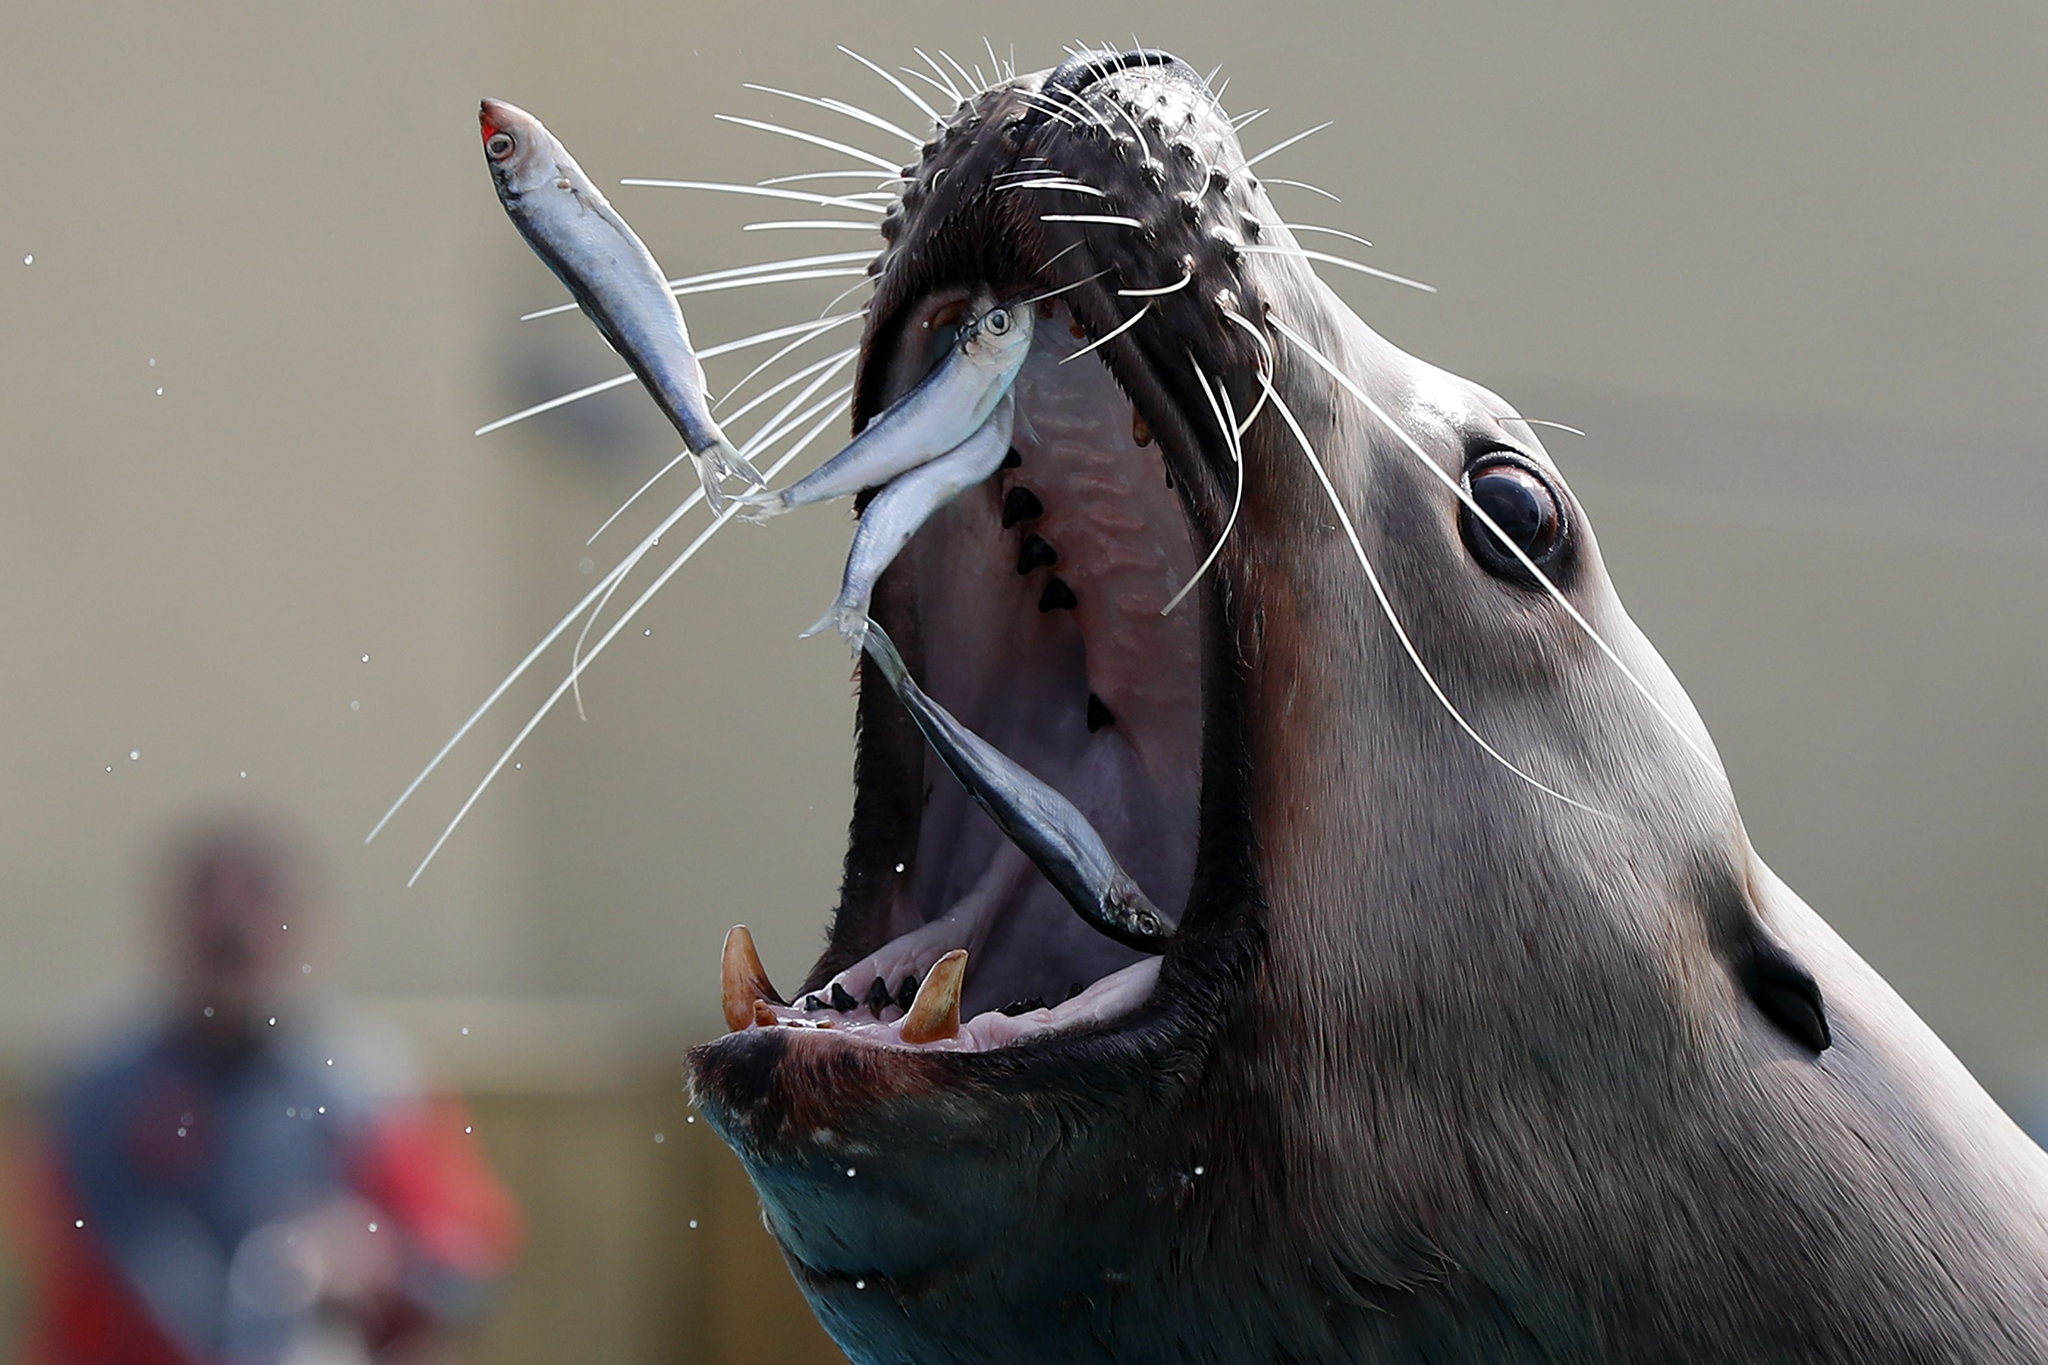 A sea lion catches sardines in the Marineland theme park on the French riviera city of Antibes, southeastern France